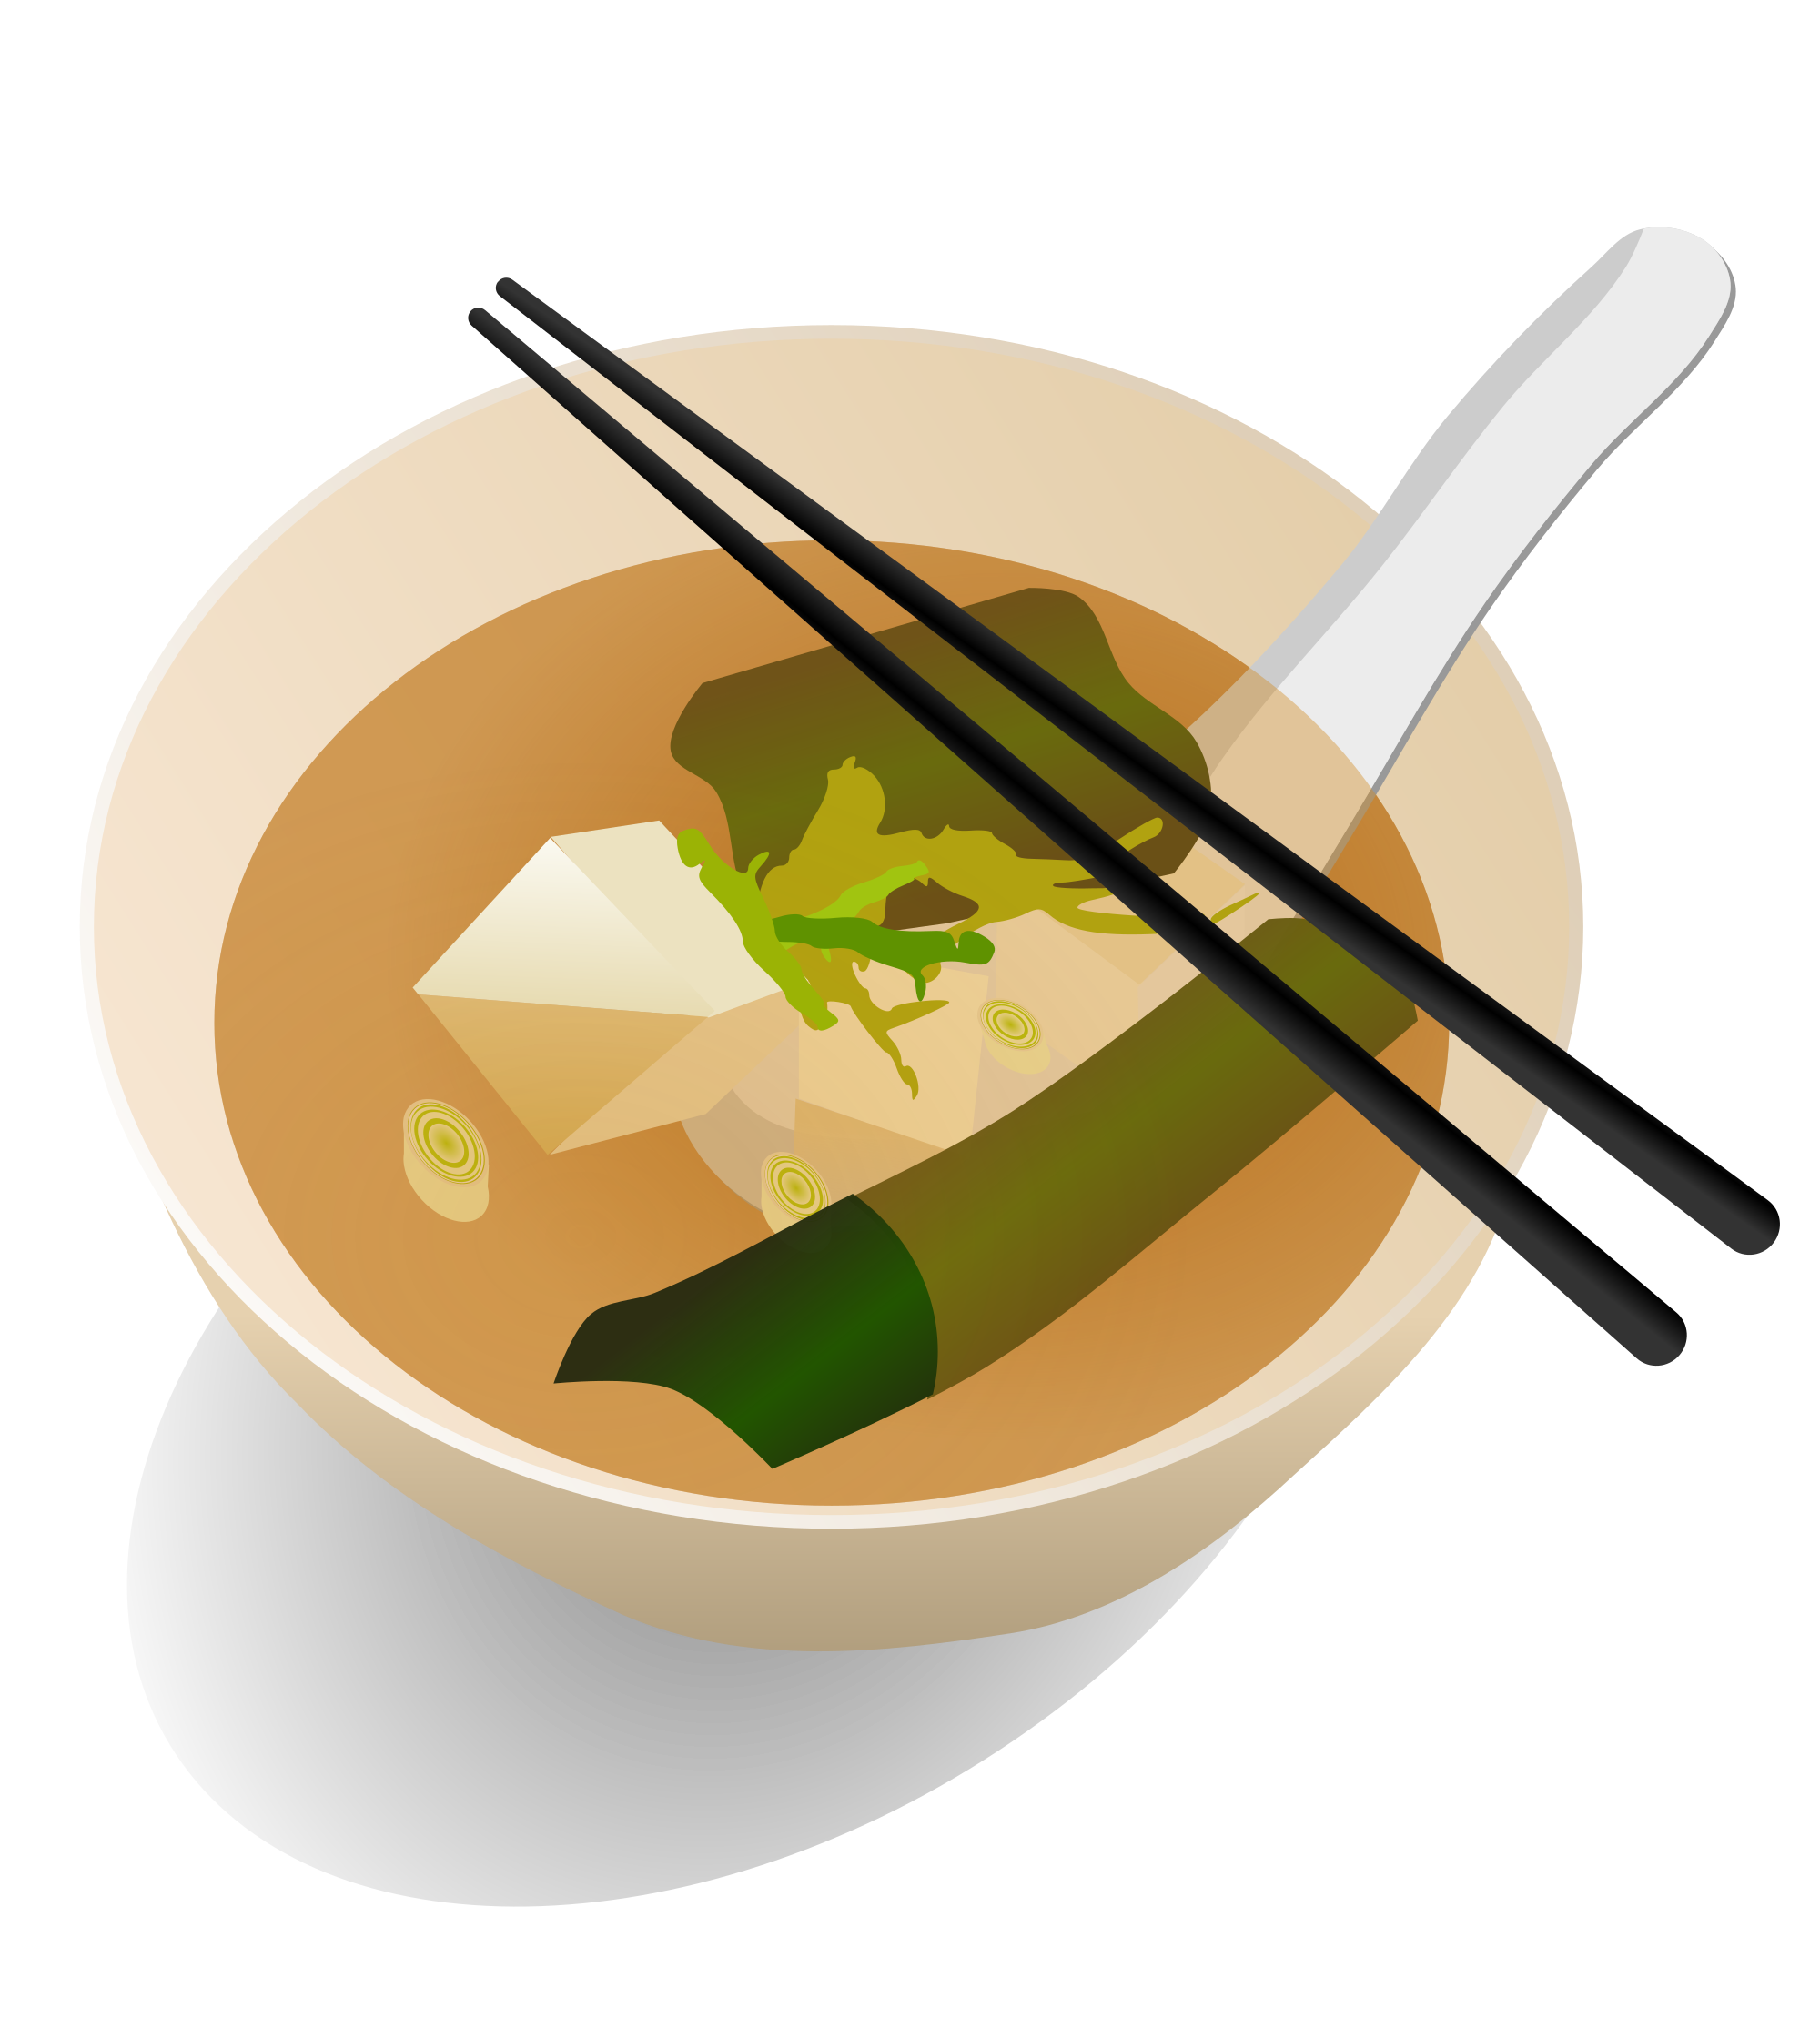 Miso soup png. File svg wikimedia commons